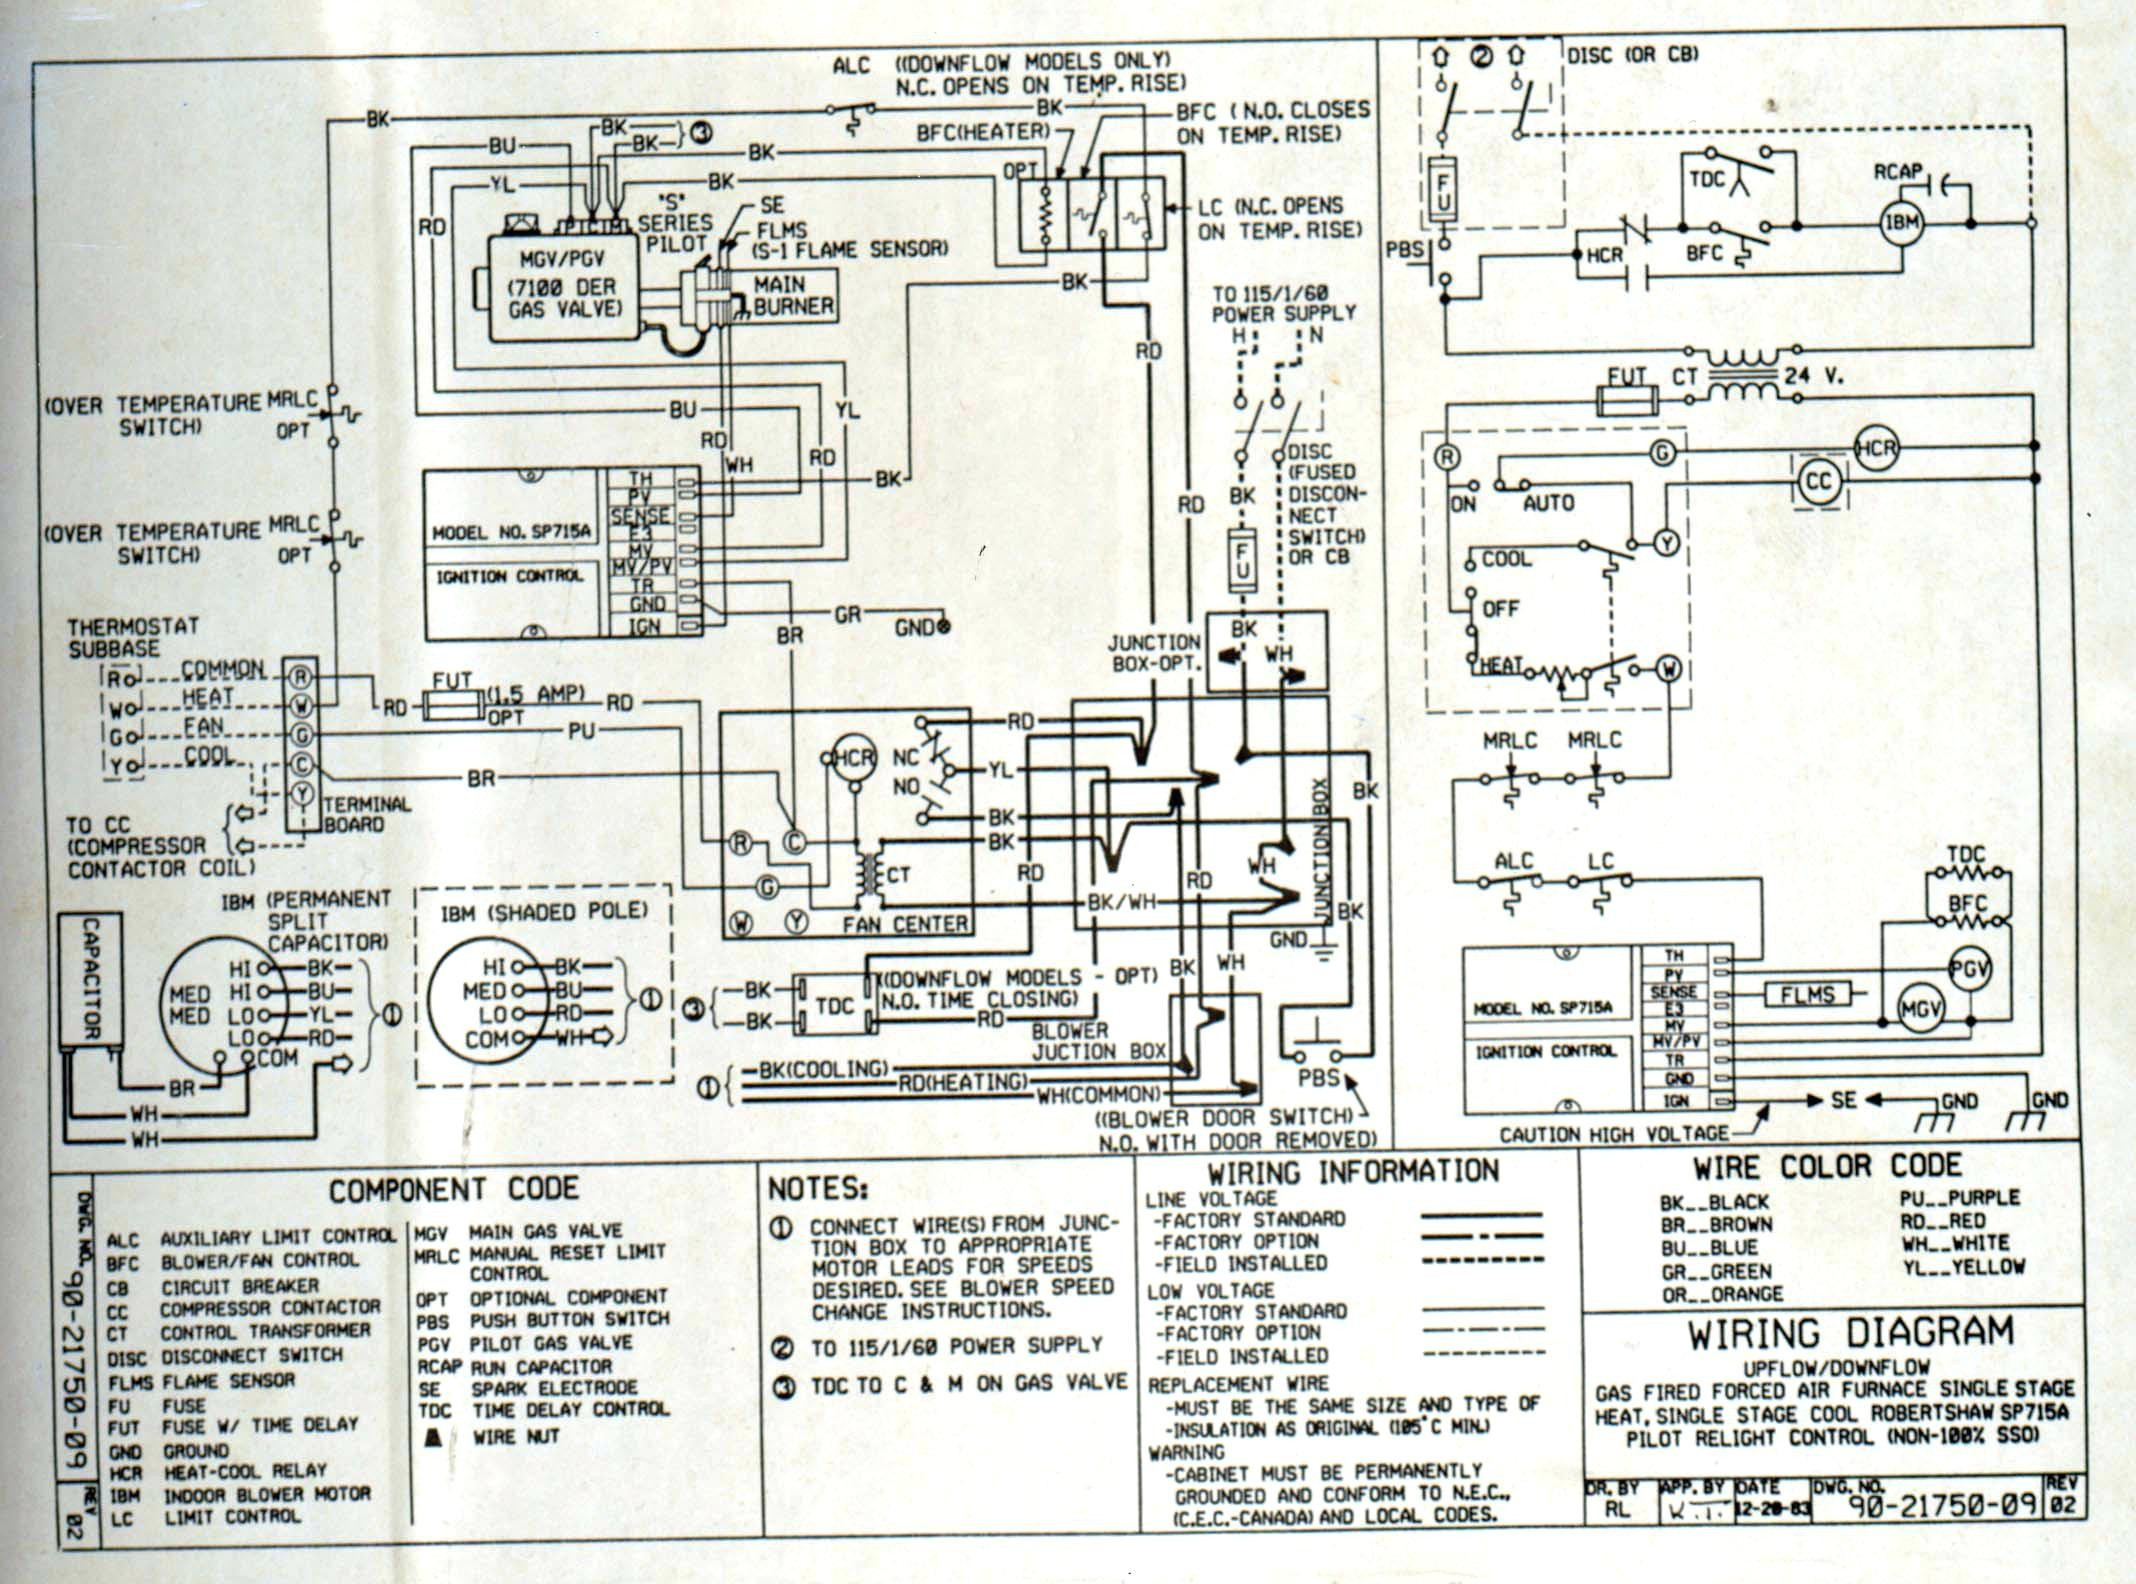 payne package unit wiring diagram Collection-Package Air Conditioning Unit Wiring Diagram Save Carrier Electric Furnace Wiring Diagrams For Payne Wiring Diagram 1-j